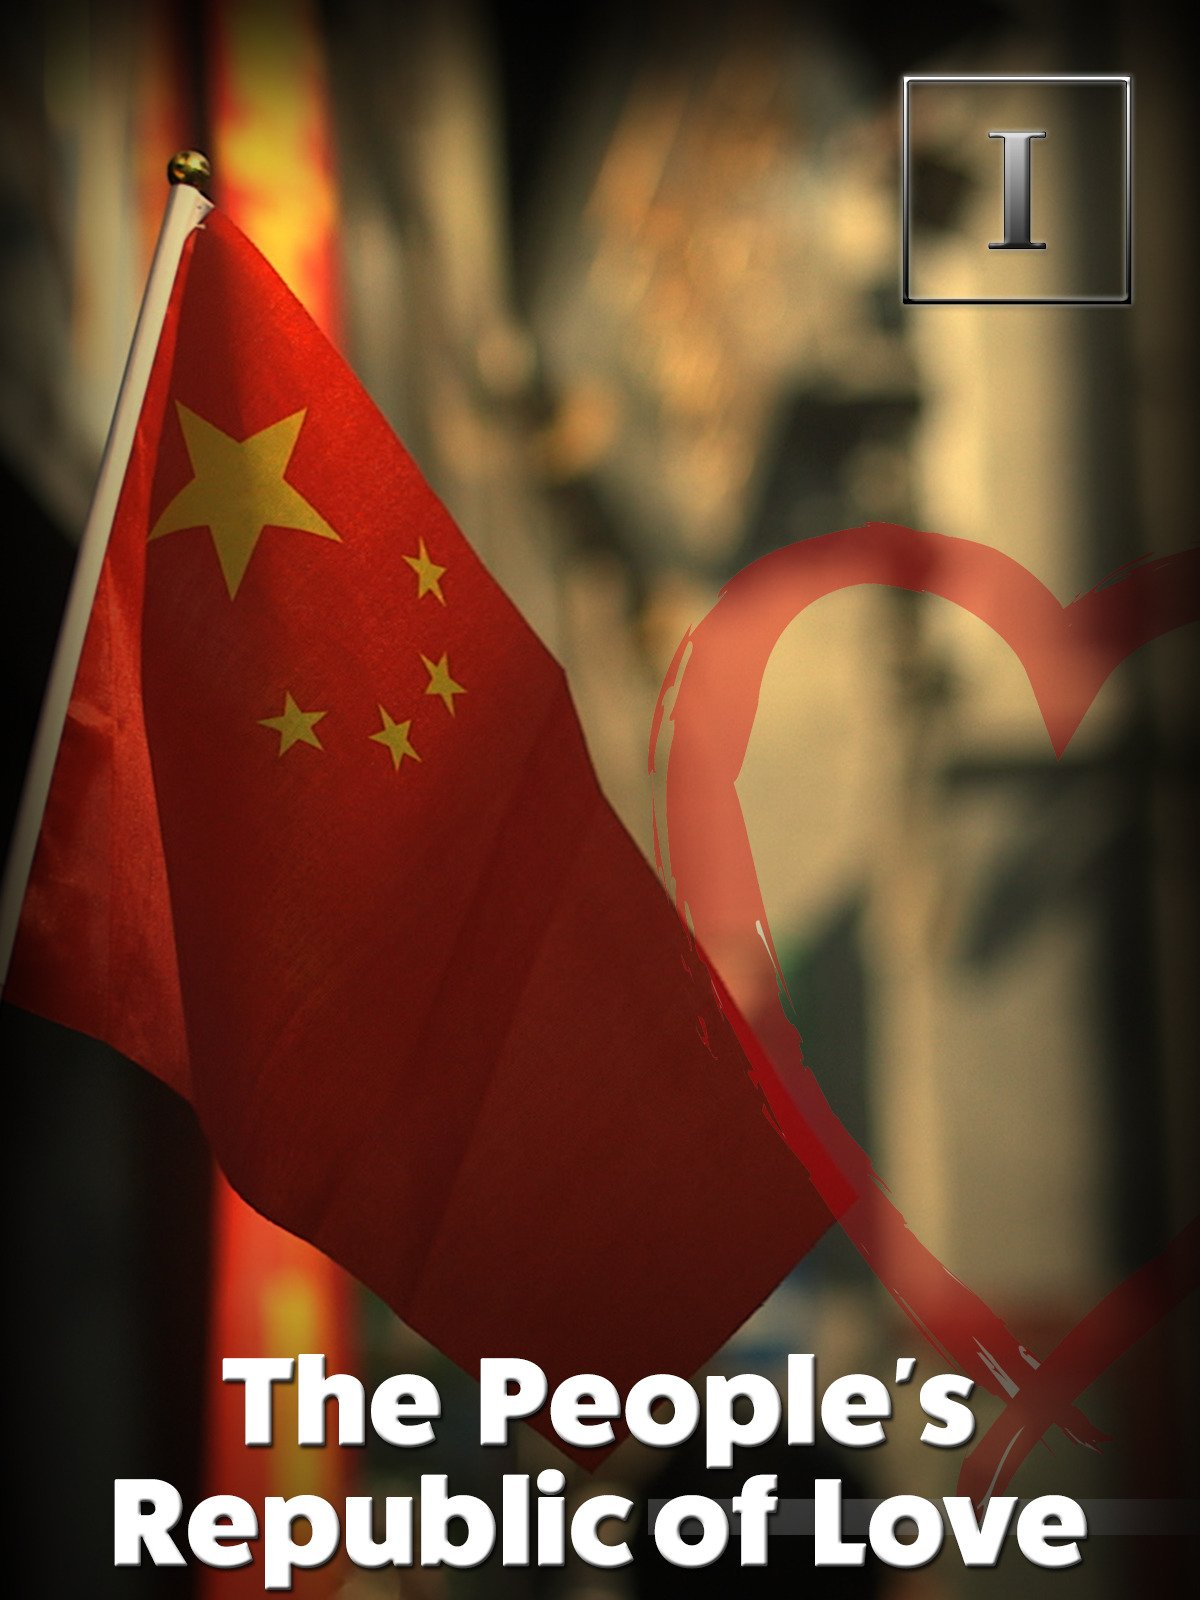 The People's Republic of Love